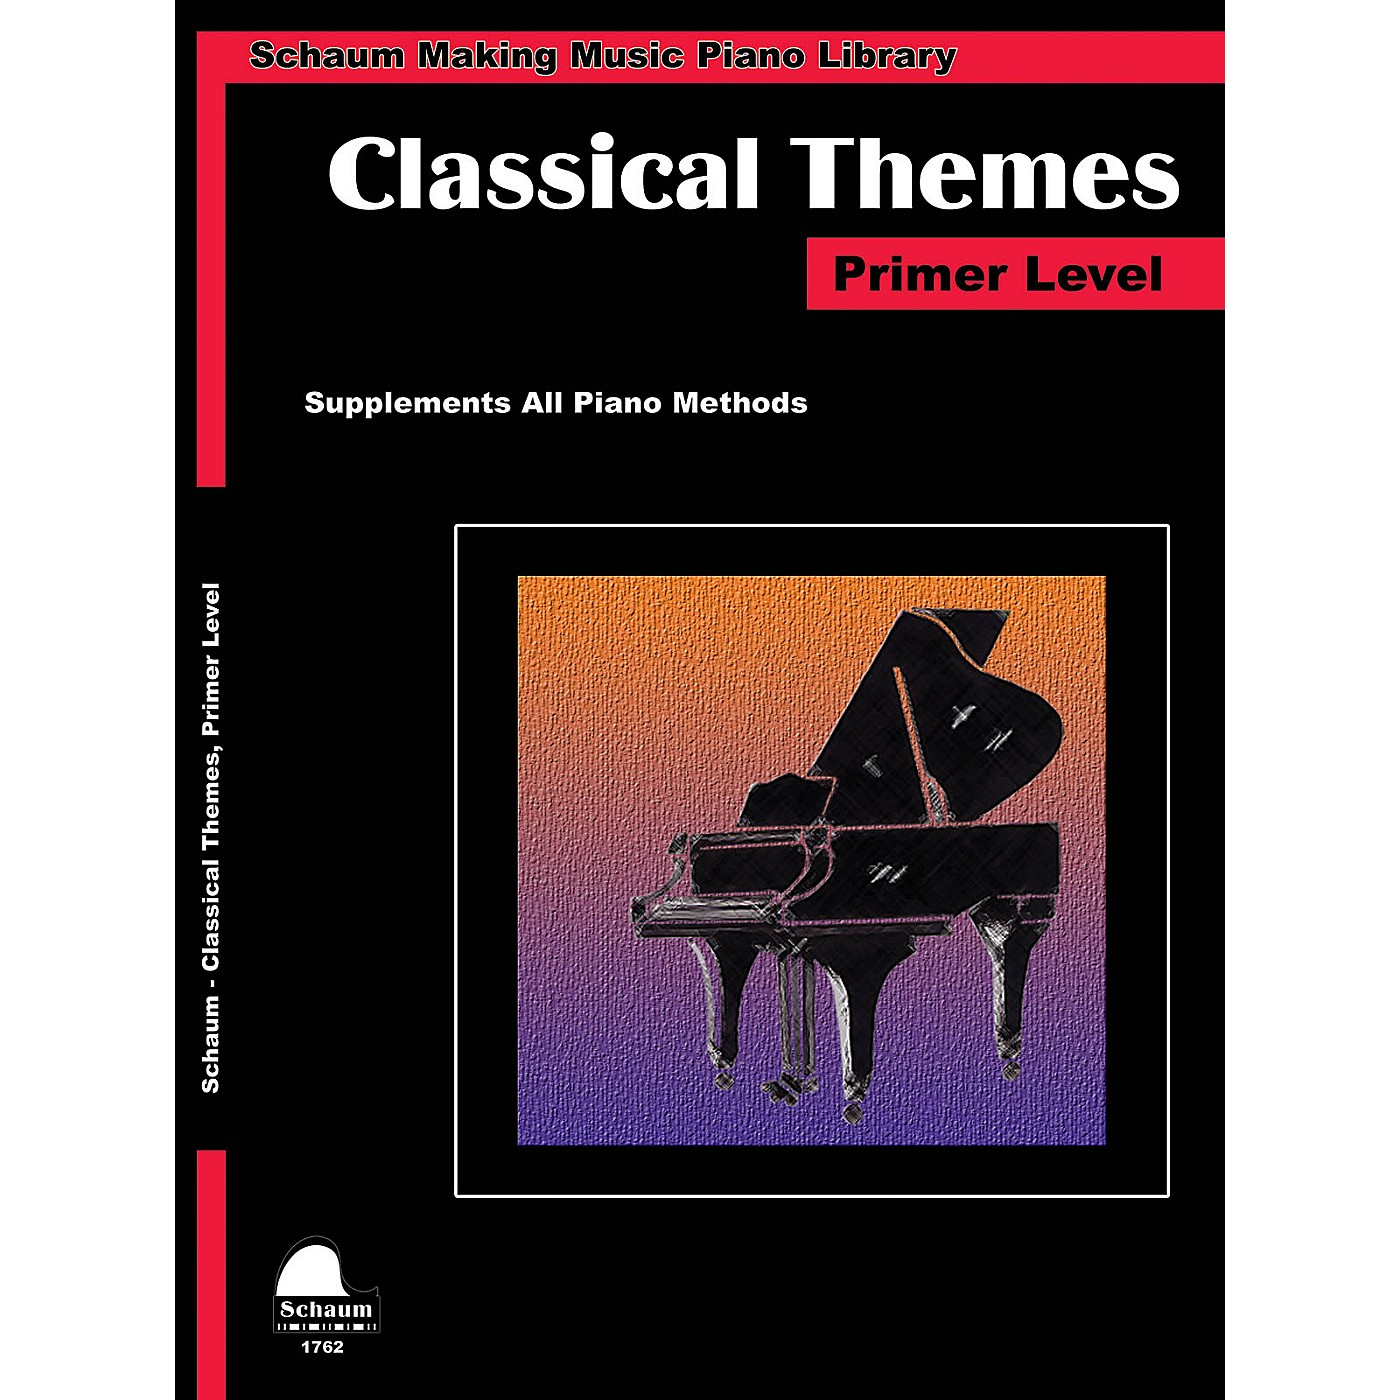 SCHAUM Classical Themes Primer Level (Schaum Making Music Piano Library) Piano Book (Level Early Elem) thumbnail